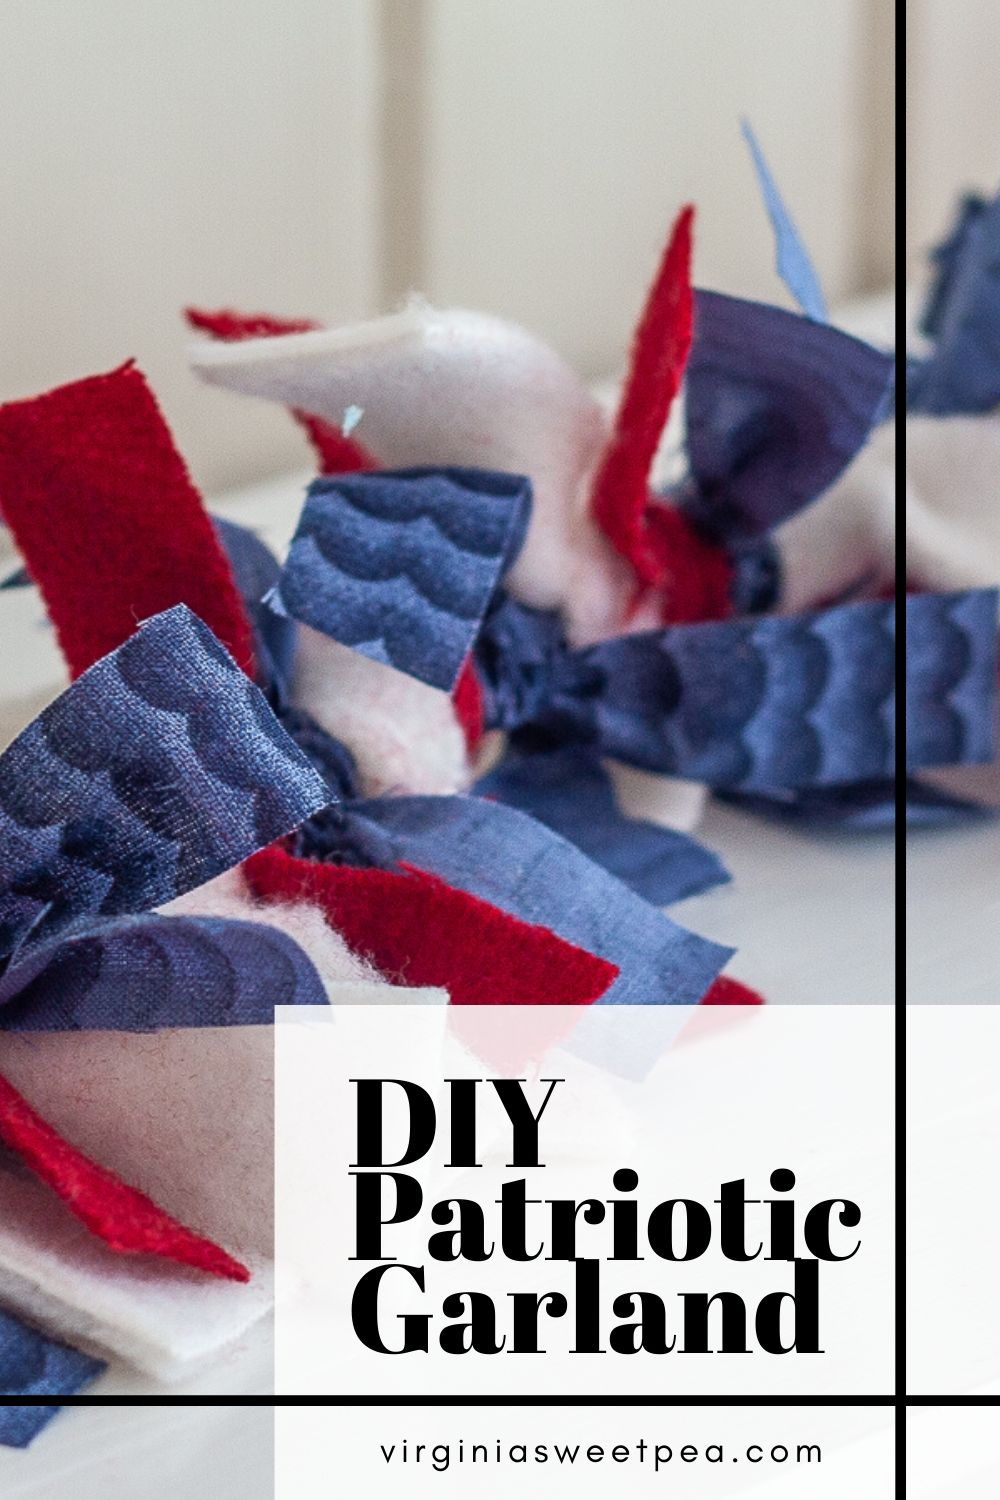 DIY Patriotic Garland - Learn how to make a garland using strips of fabric to use for patriotic decor.  Change the colors to decorate for another season!  #diygarland #diyraggarland #diyfabricgarland #fabricgarland #raggarland #patrioticdecor via @spaula